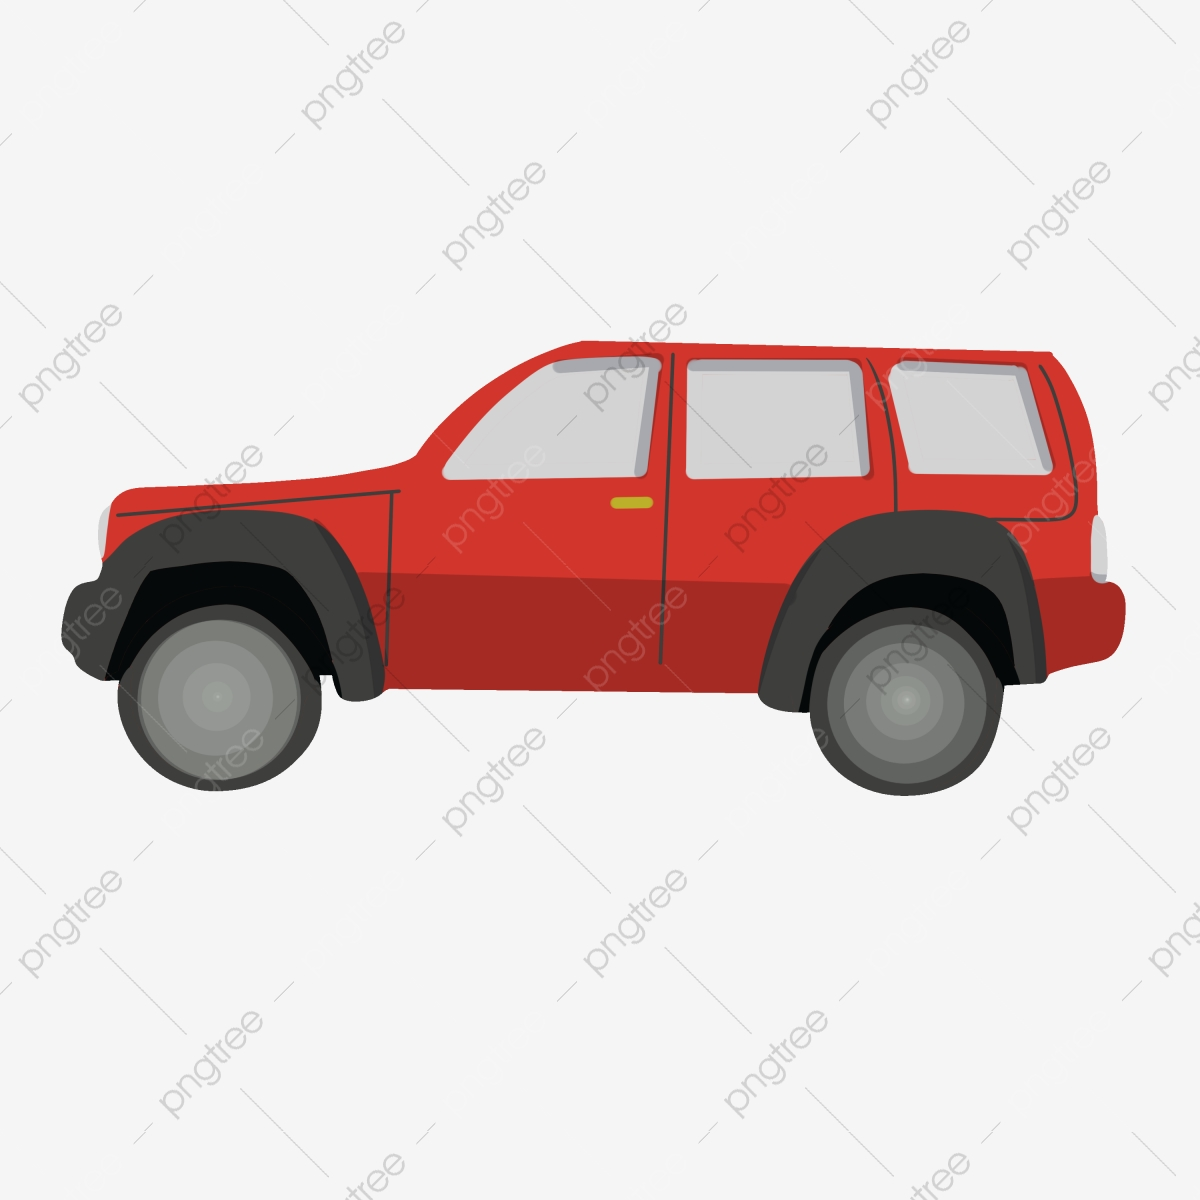 Vehicle Red Car Red Car Cartoon Illustration Car Illustration Png Transparent Clipart Image And Psd File For Free Download